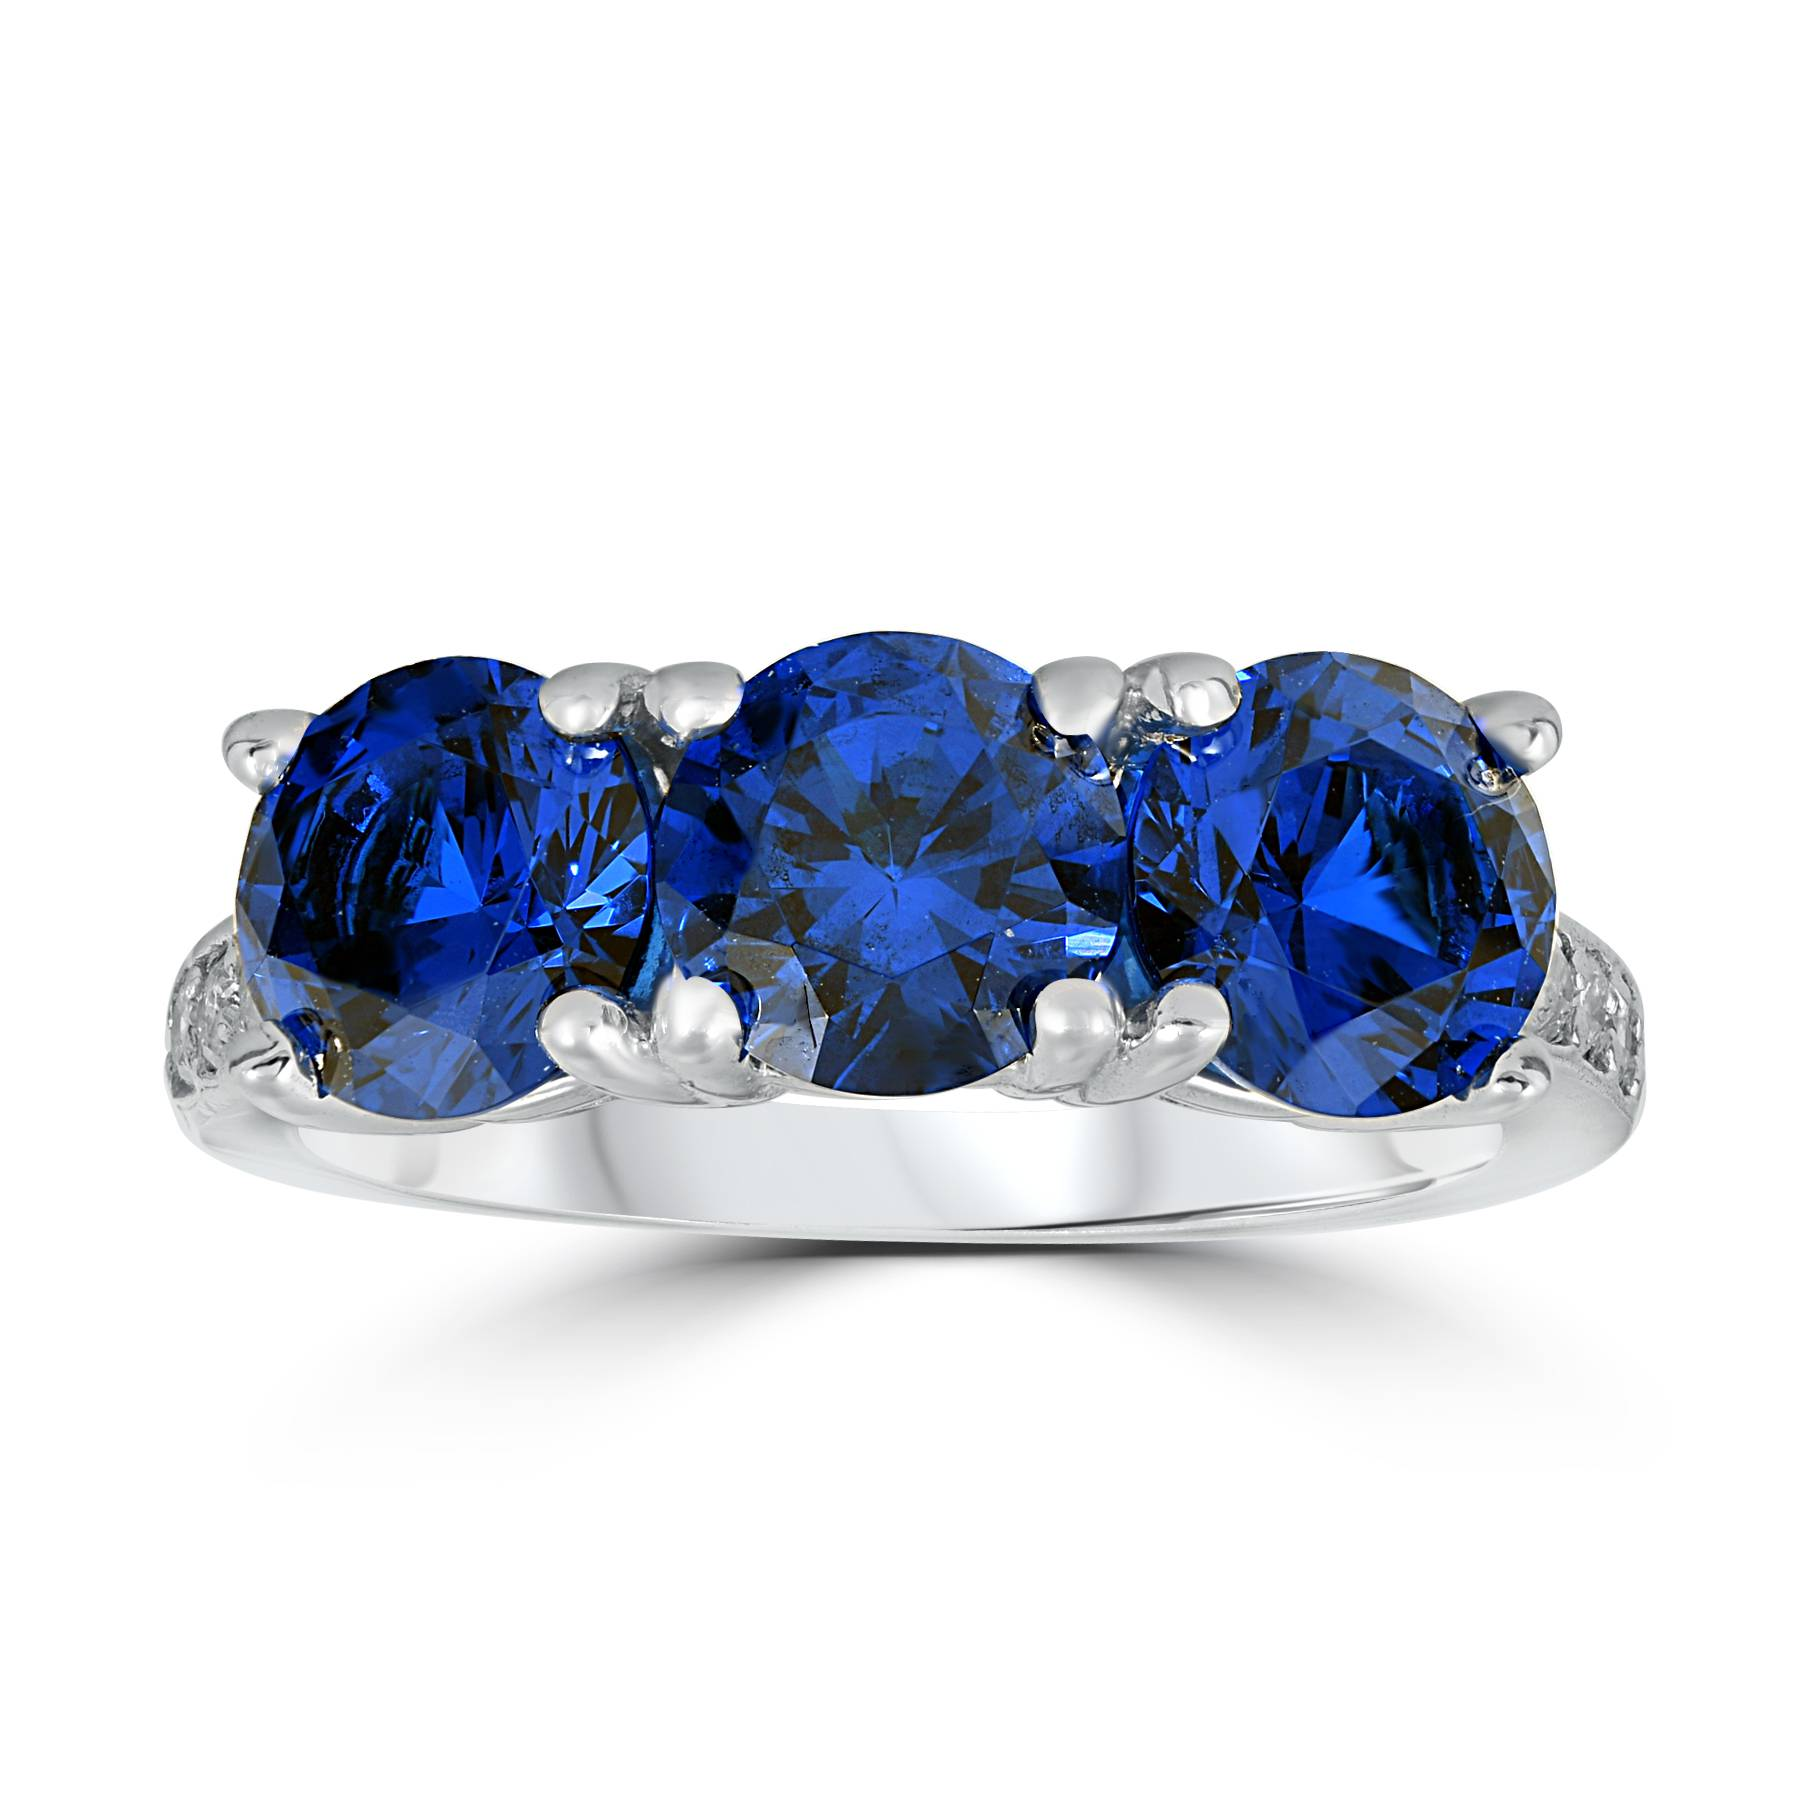 3 3/4ct Diamond & Synthetic Blue Sapphire Ring 10K White Gold 3- Stone - image 3 of 3